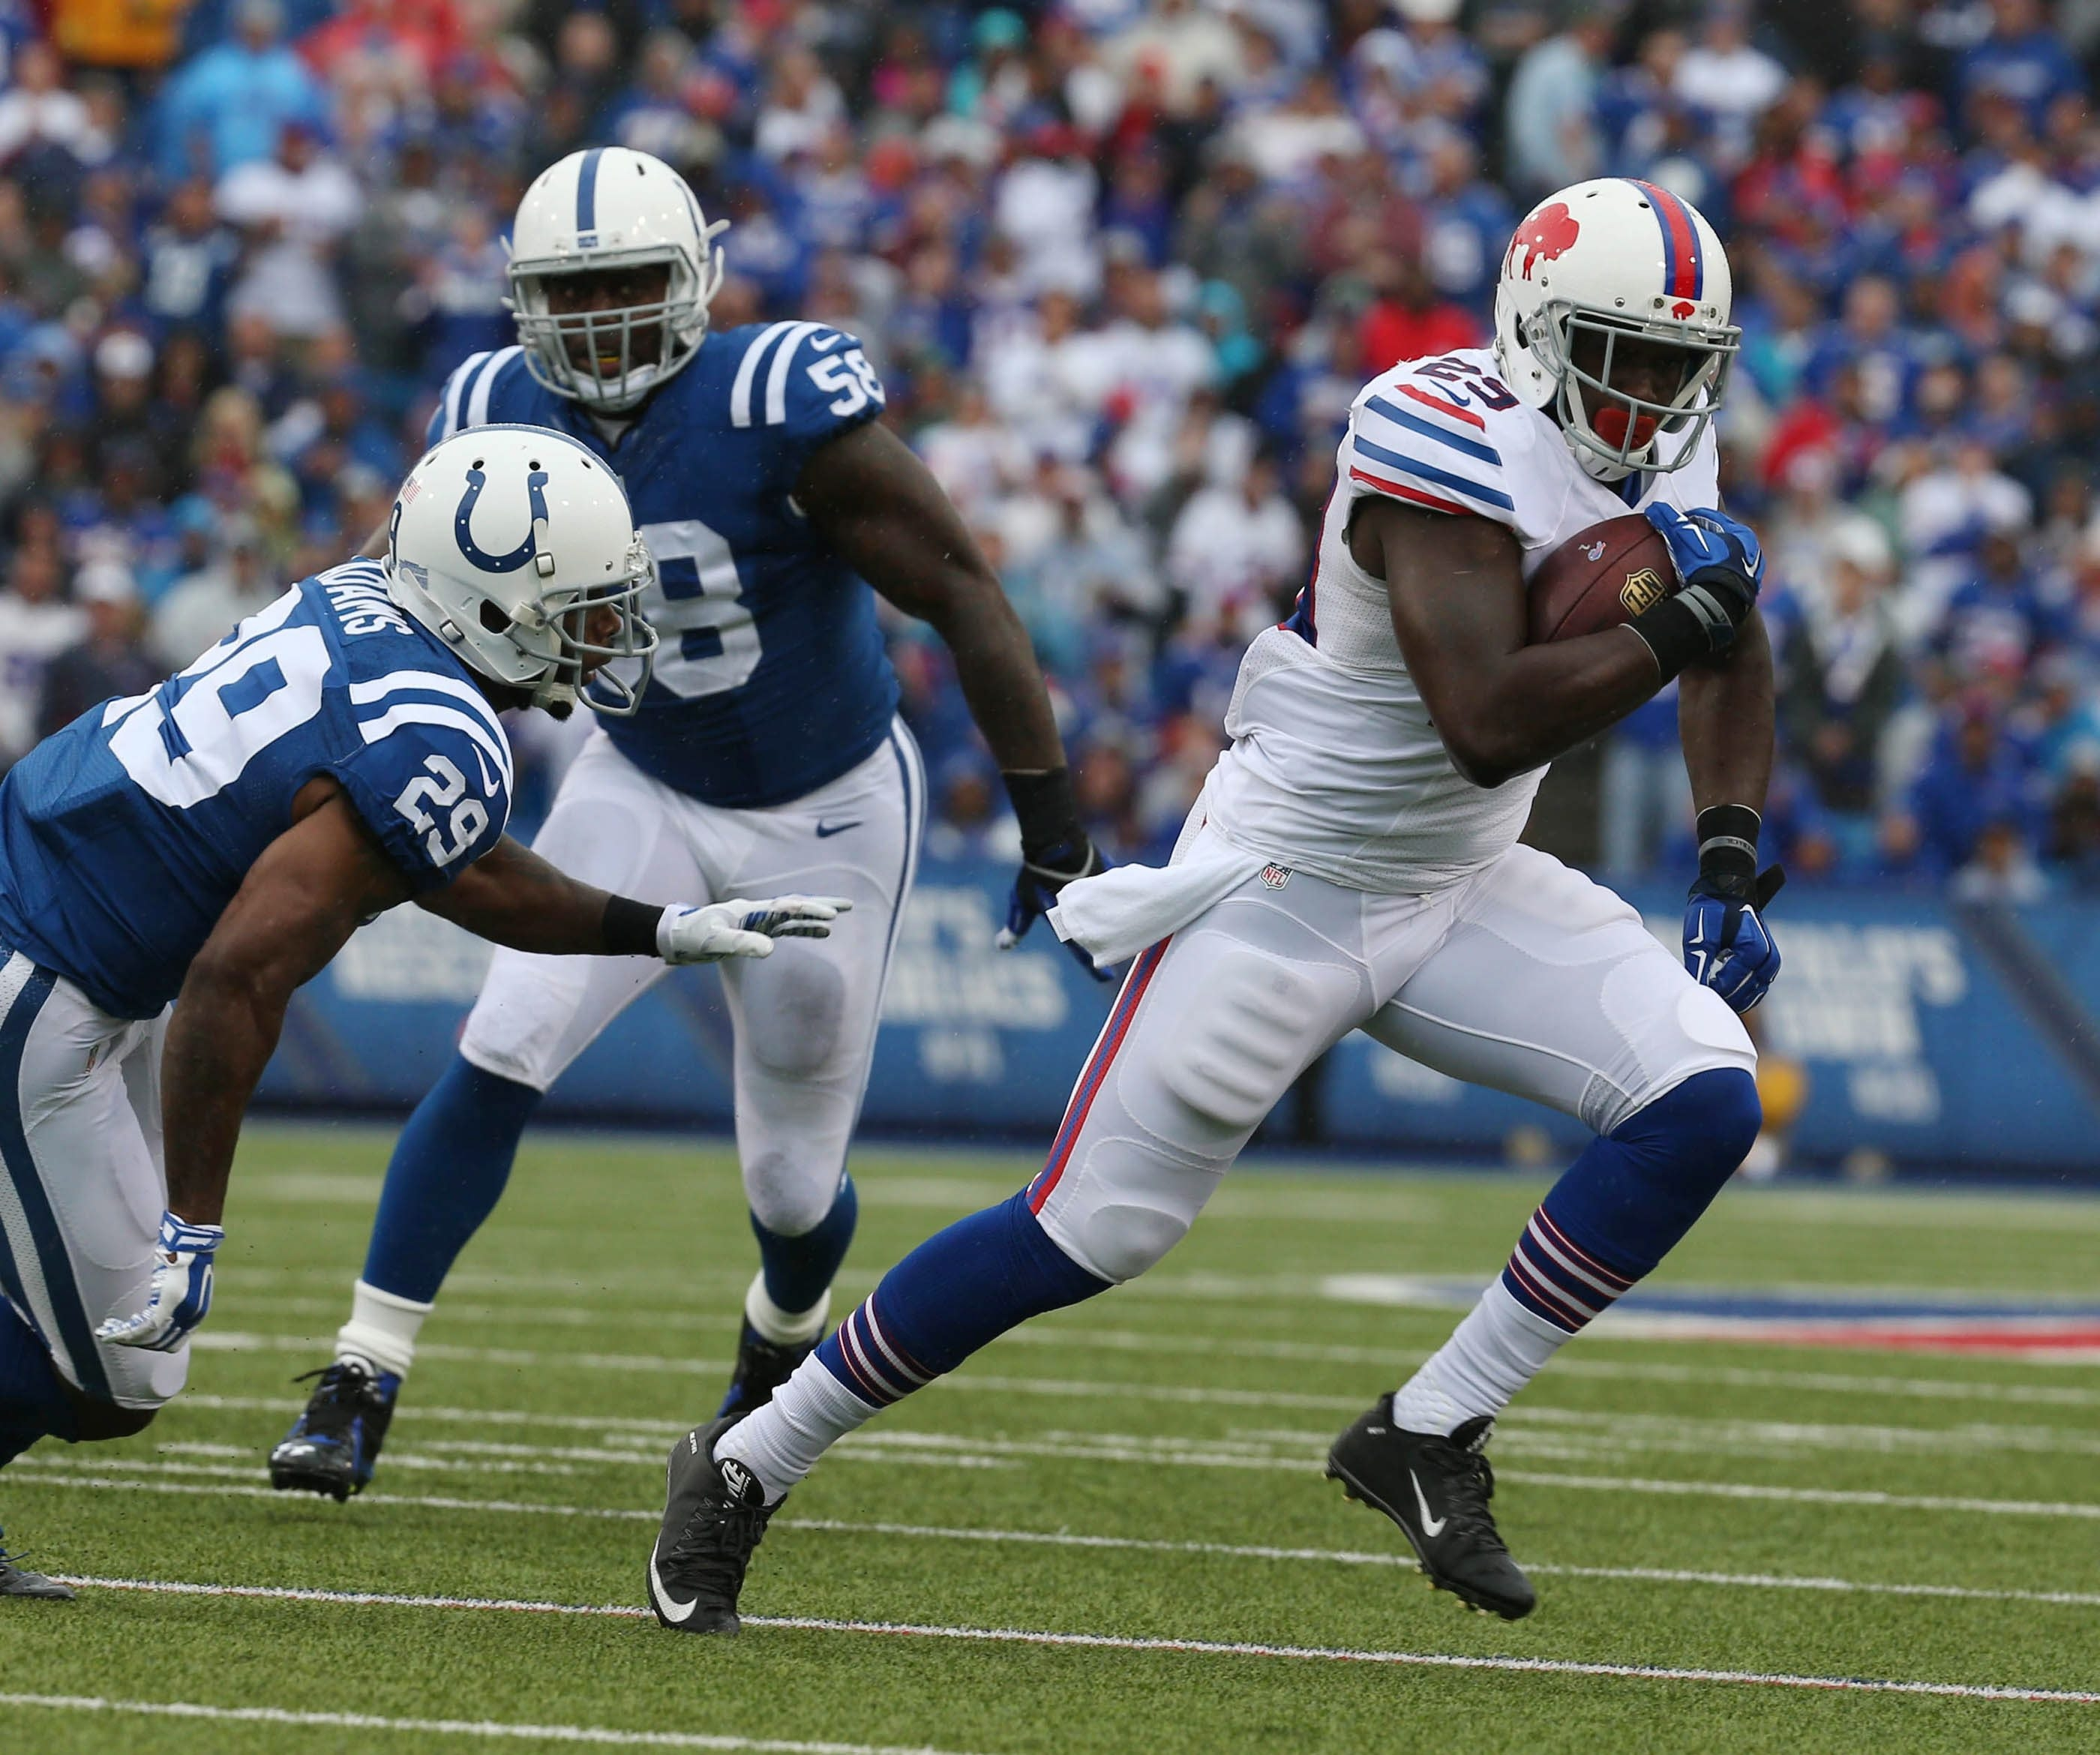 Buffalo Bills running back Karlos Williams bursts through Colts tacklers en route to his first NFL touchdown last Sunday.  (James P. McCoy/ Buffalo News)